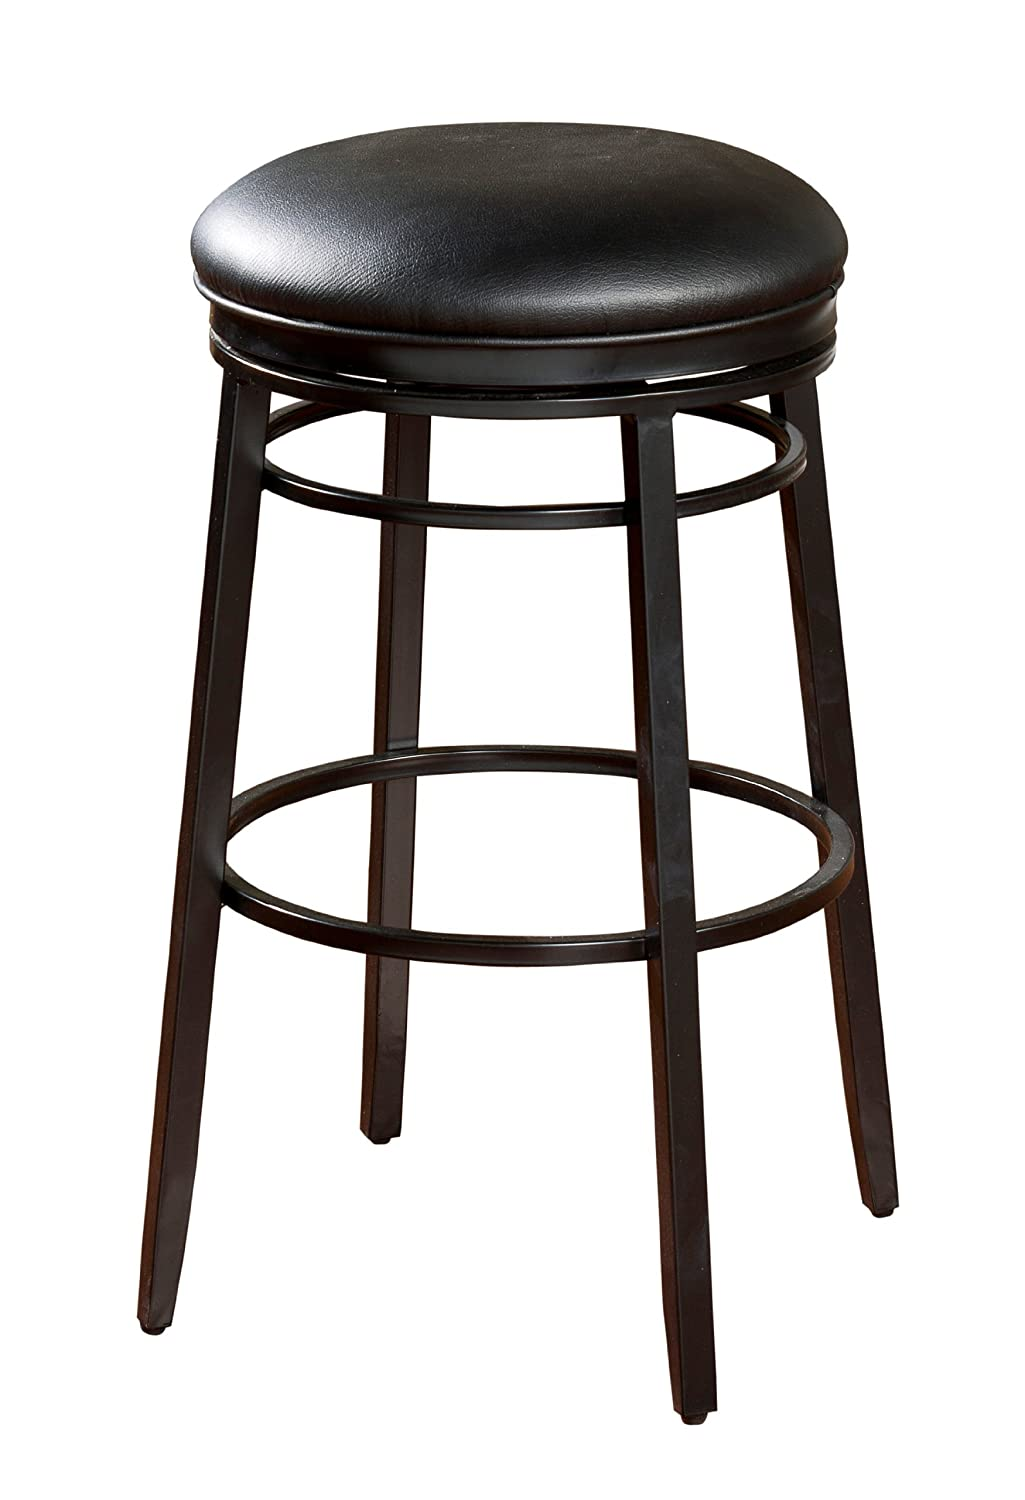 Counter Height Stools How Tall : Showing picture: Counter Height Bar Stools